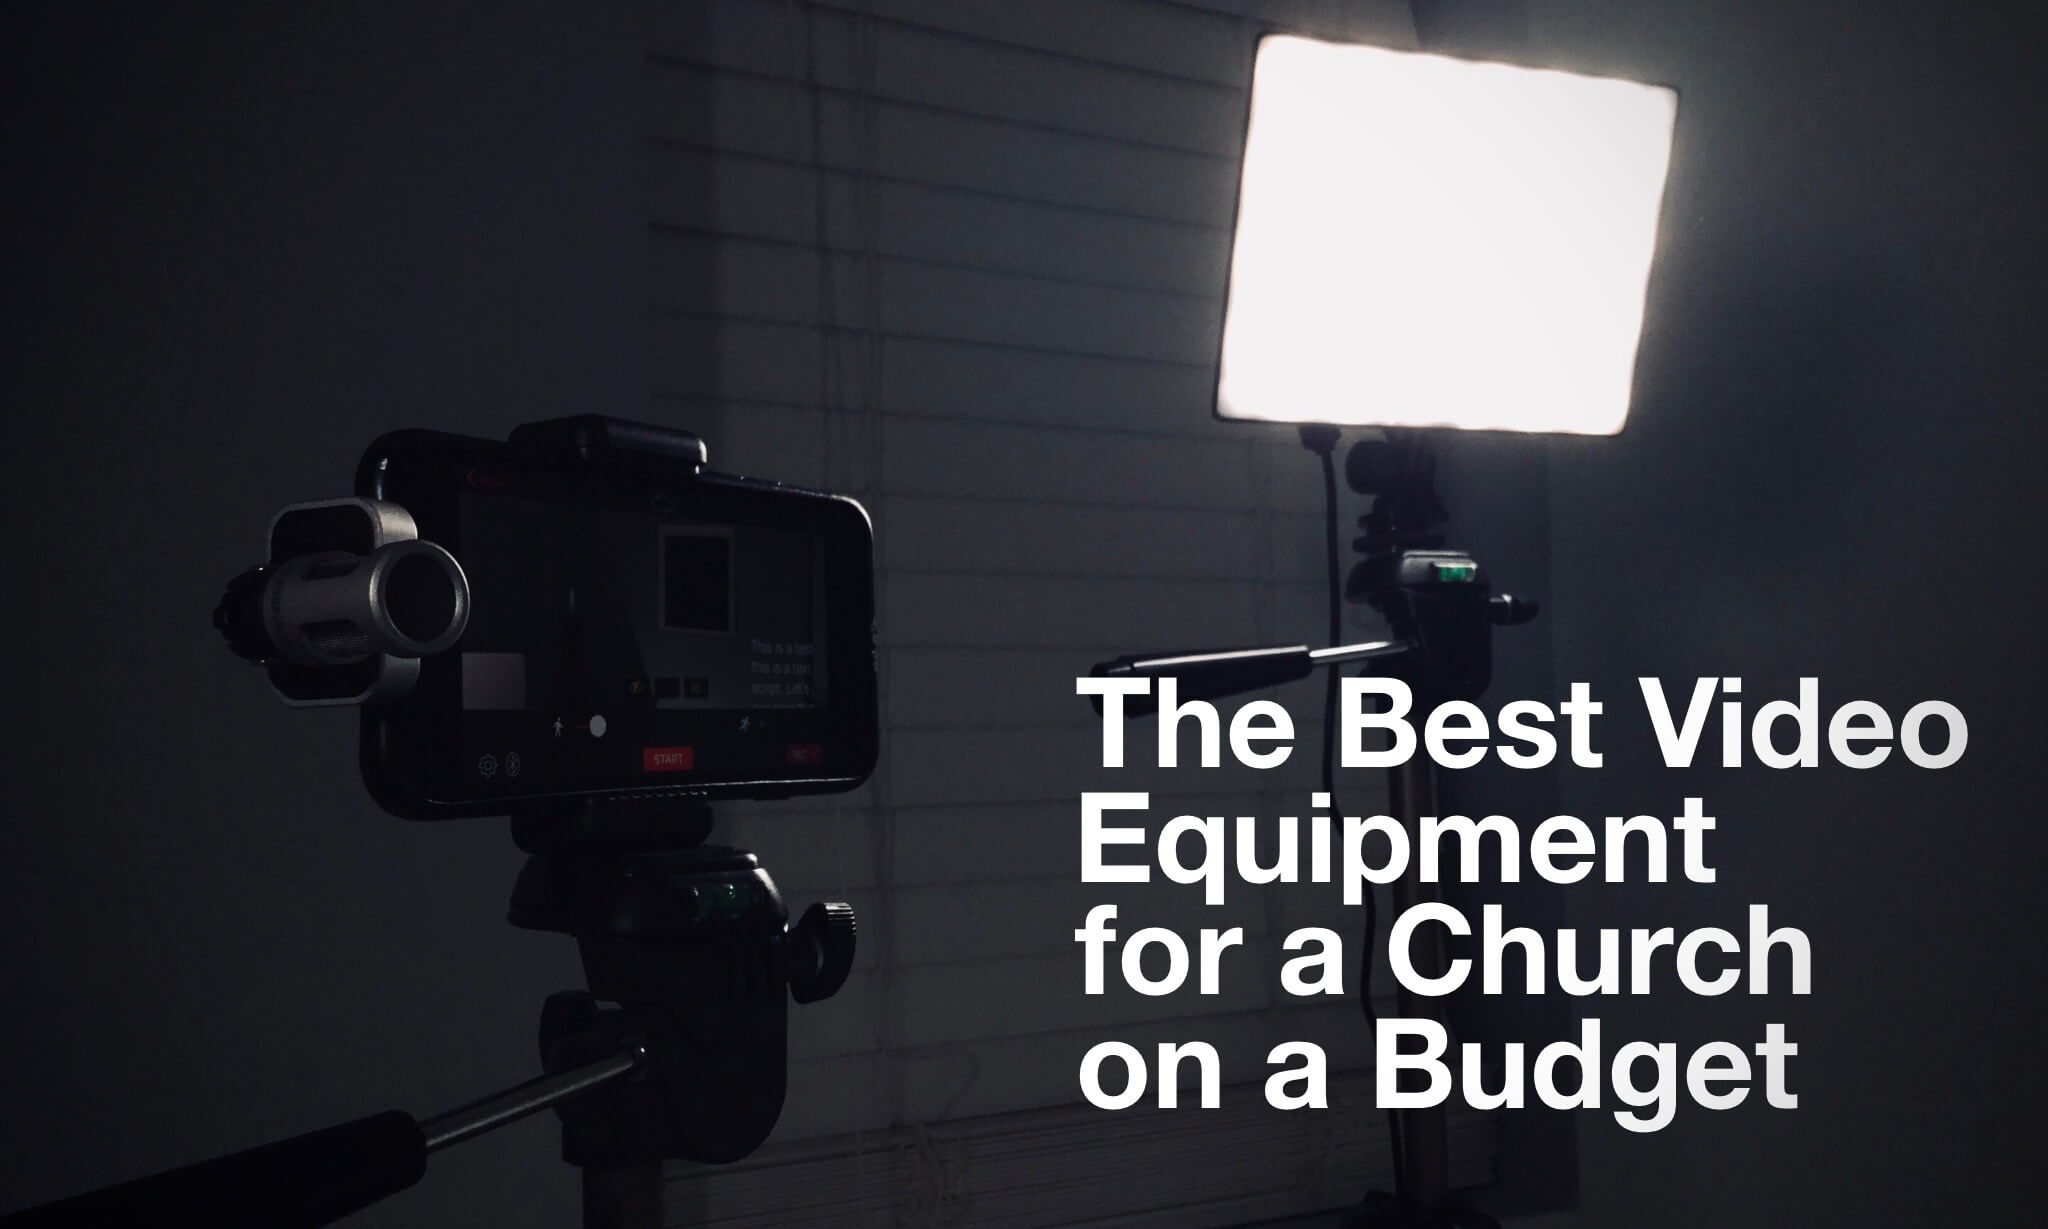 The Best Video Equipment for a Church on a Budget - Pro Preacher